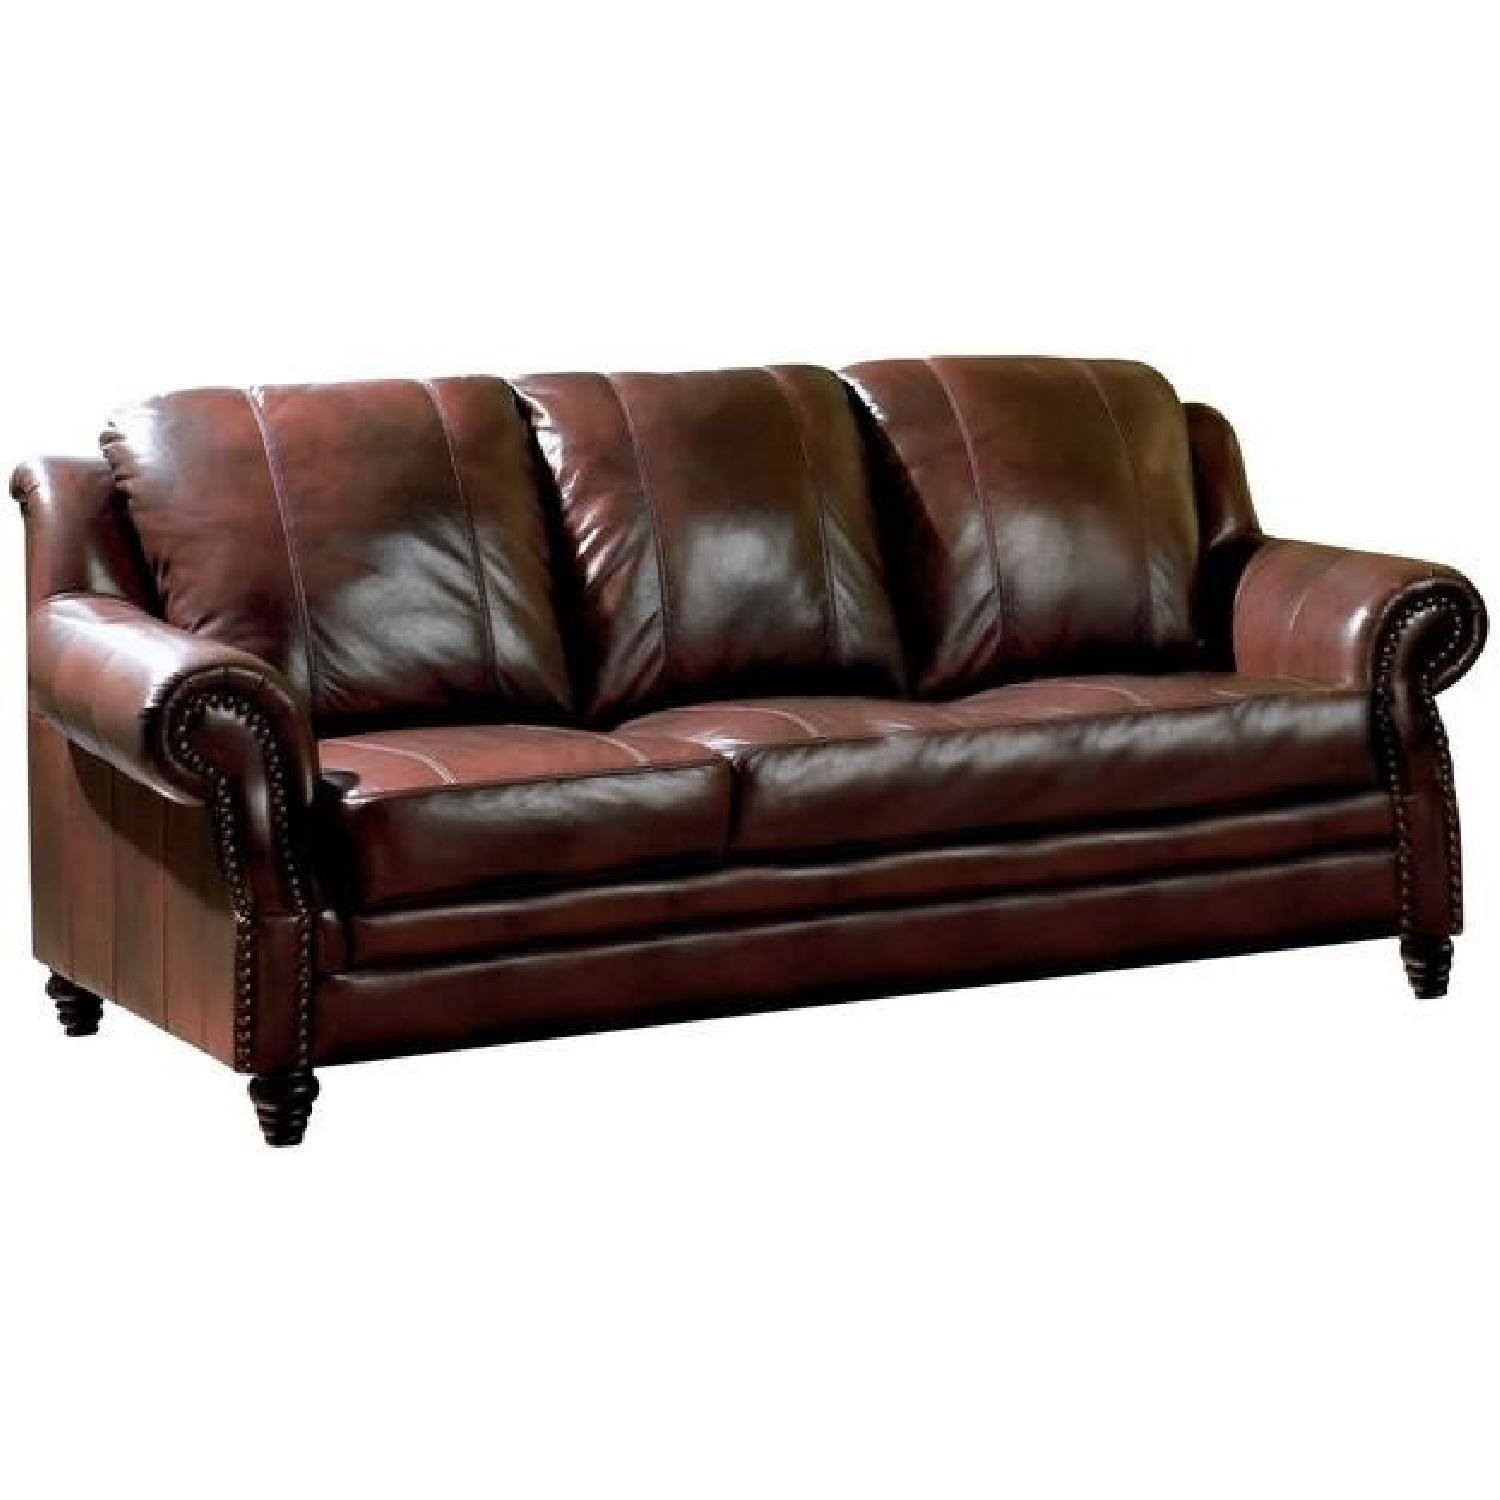 Sofa in Burgundy Leather Match w/ Nailhead Accent